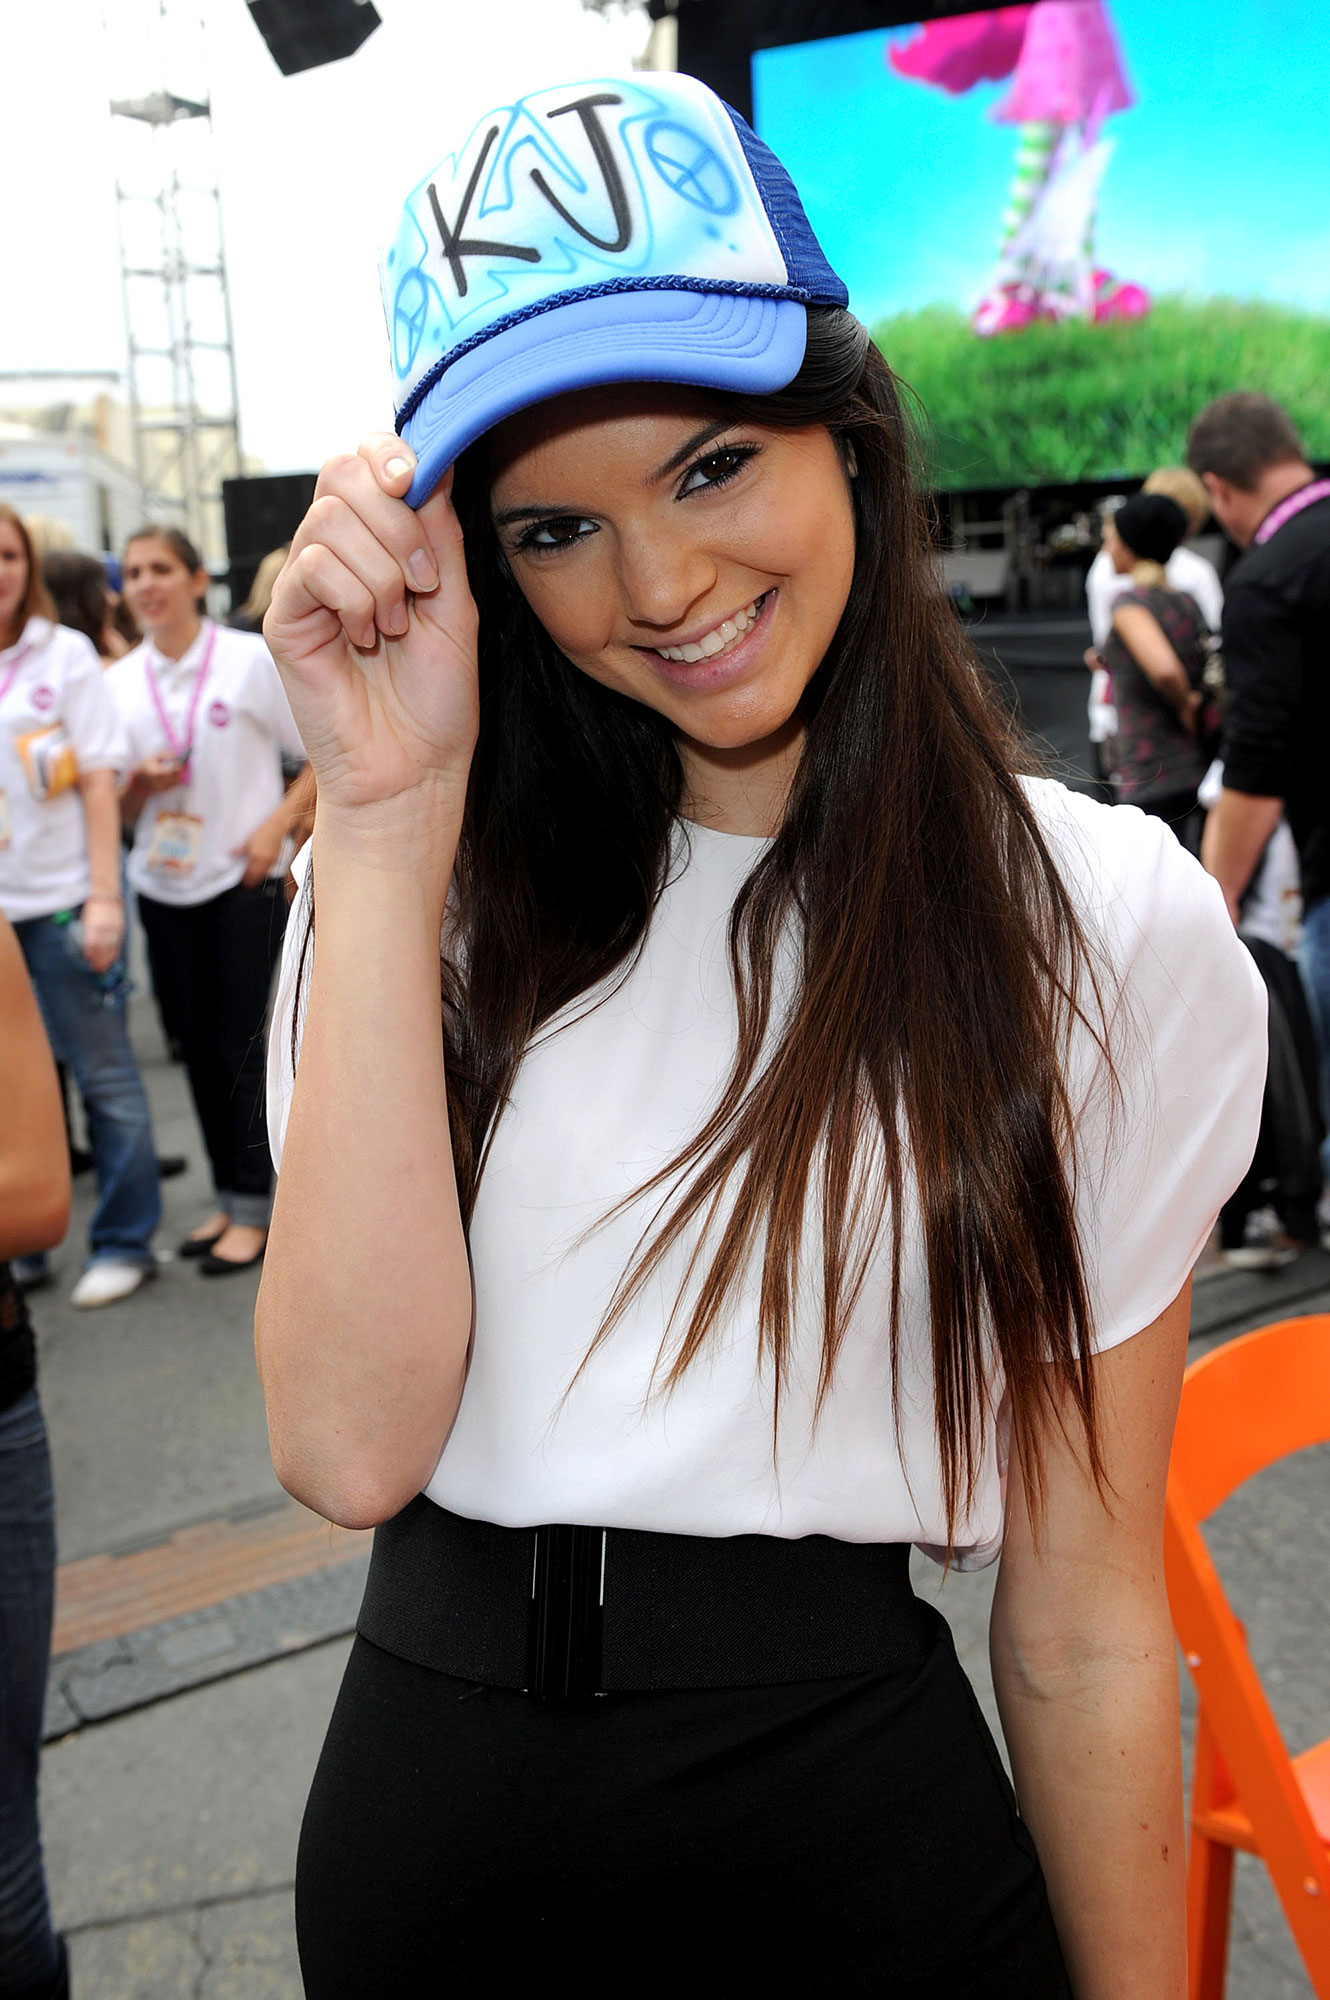 Kendall Jenner through the years - The rising star rocked an airbrushed, monogrammed cap at Variety 's 4th annual Power of Youth event in 2010.